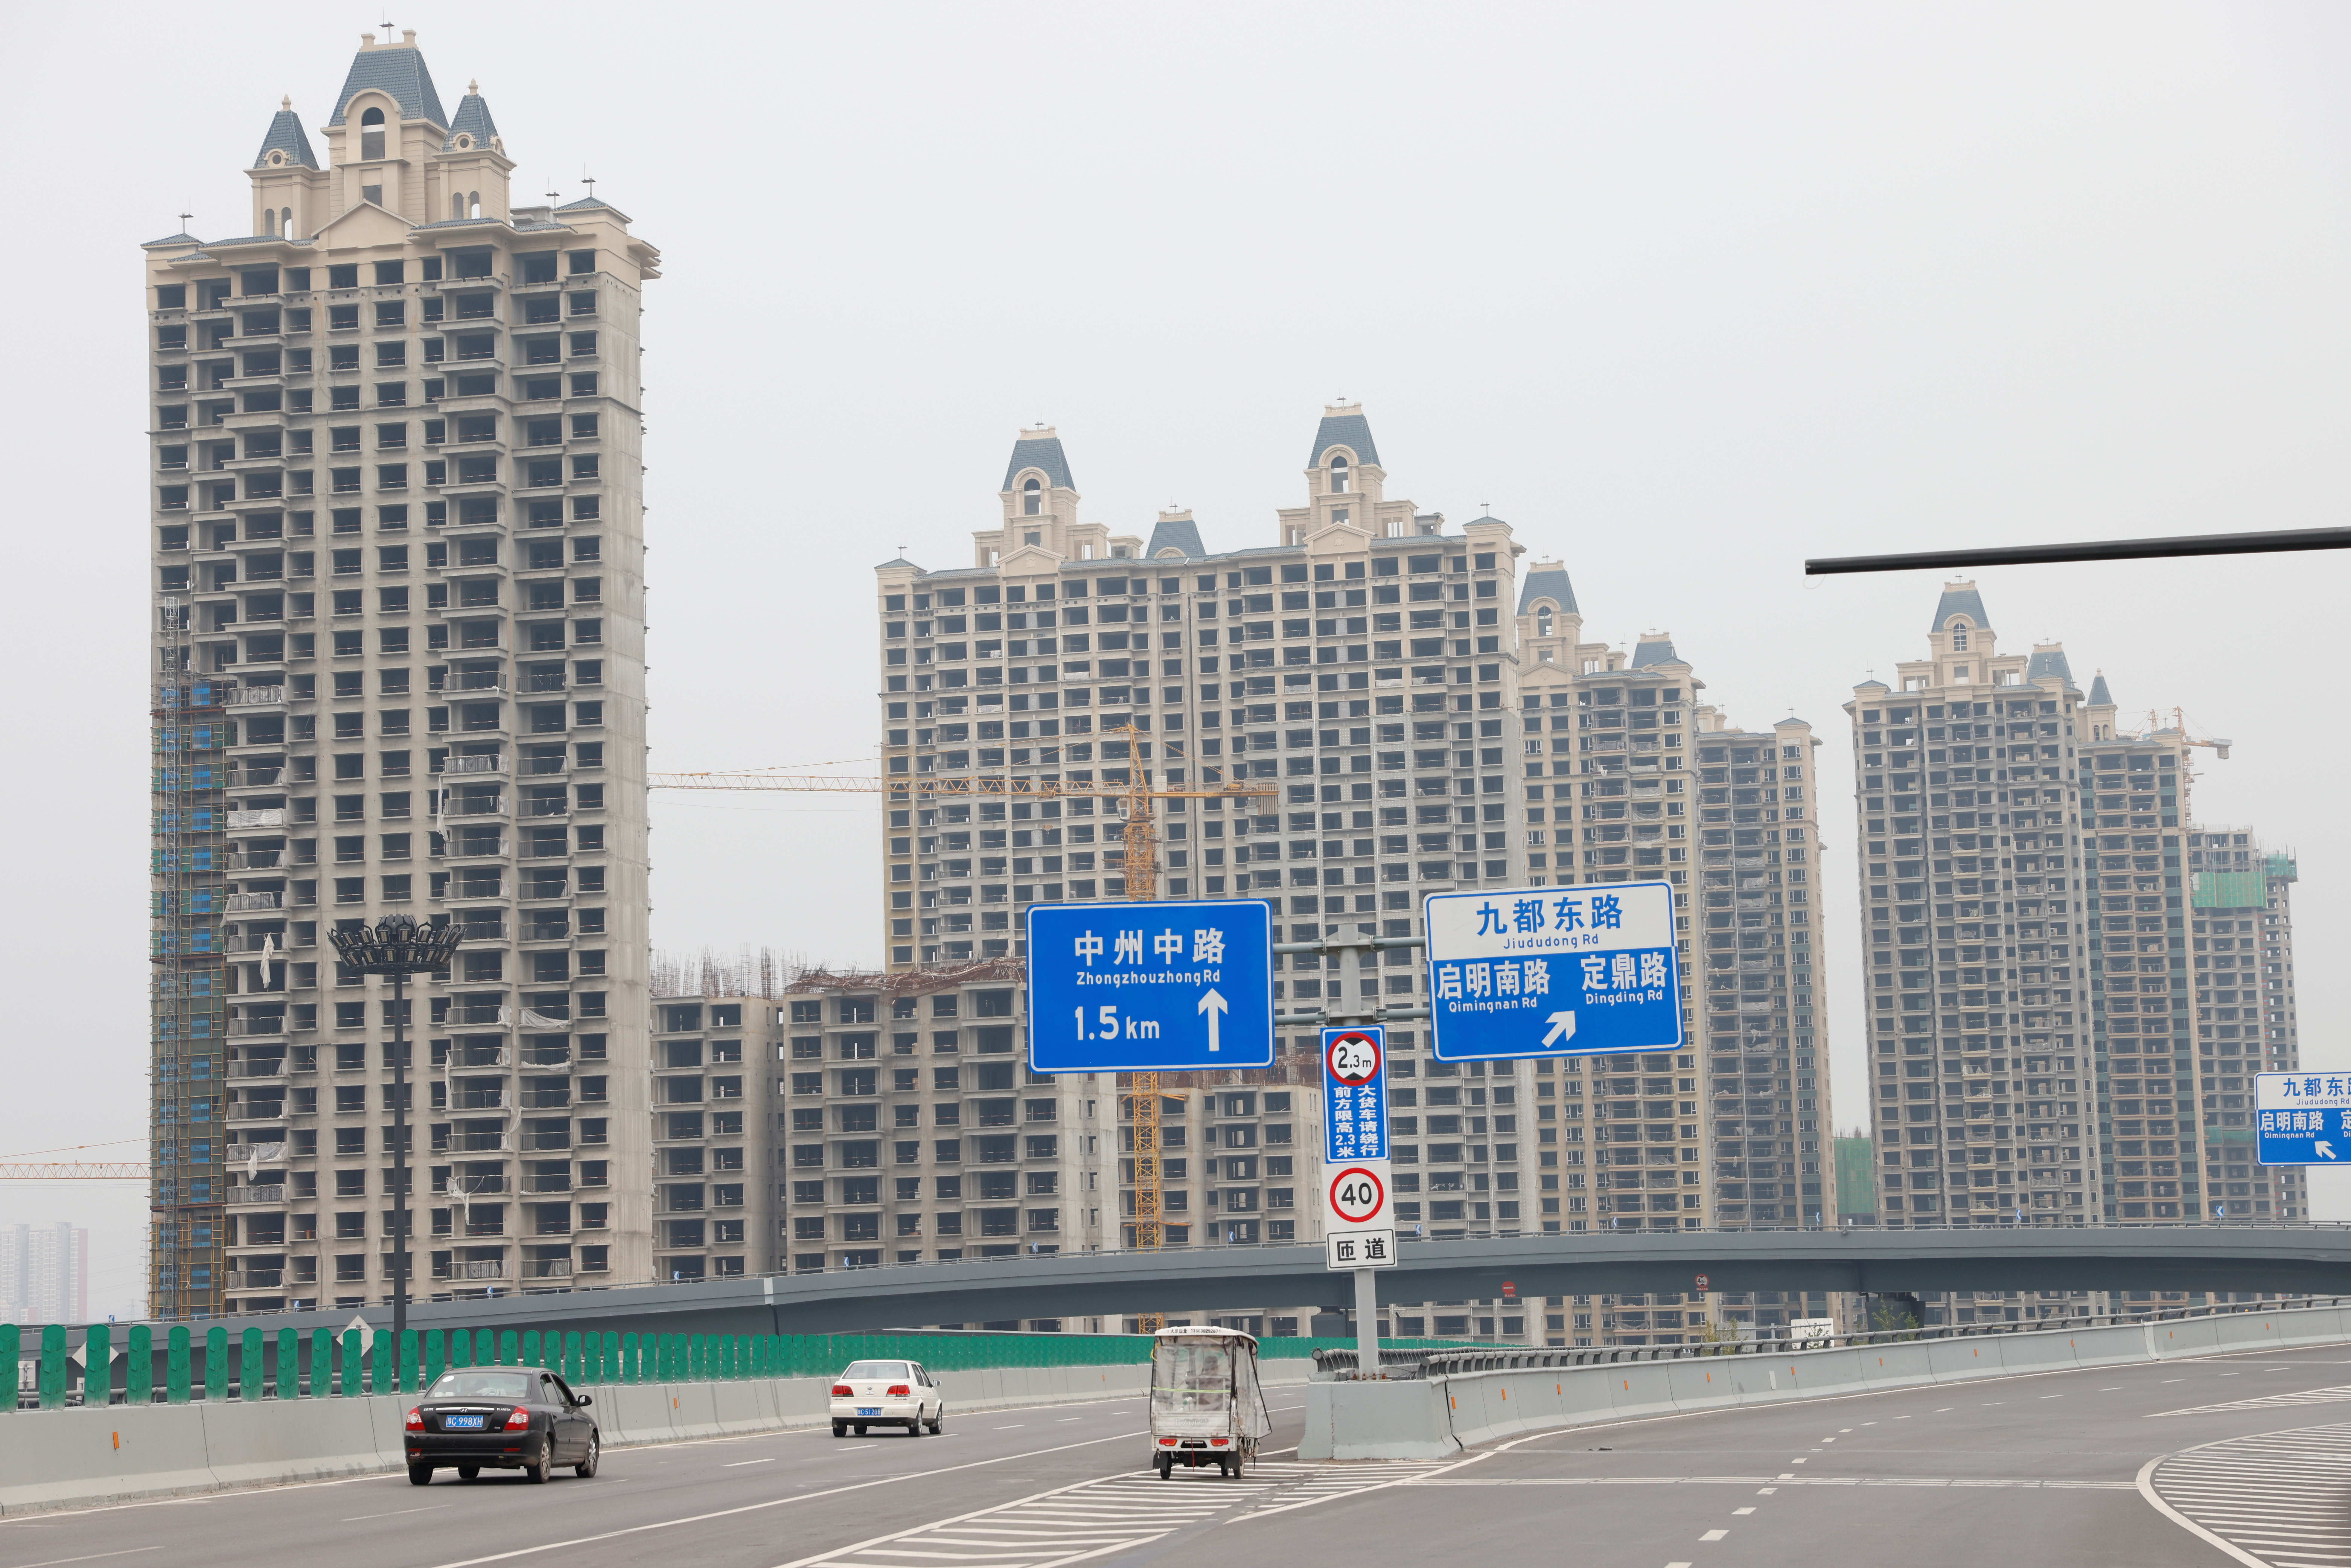 Vehicles drive by unfinished residential buildings from the Evergrande Oasis, a housing complex developed by Evergrande Group, in Luoyang, China September 16, 2021. Picture taken September 16, 2021. REUTERS/Carlos Garcia Rawlins